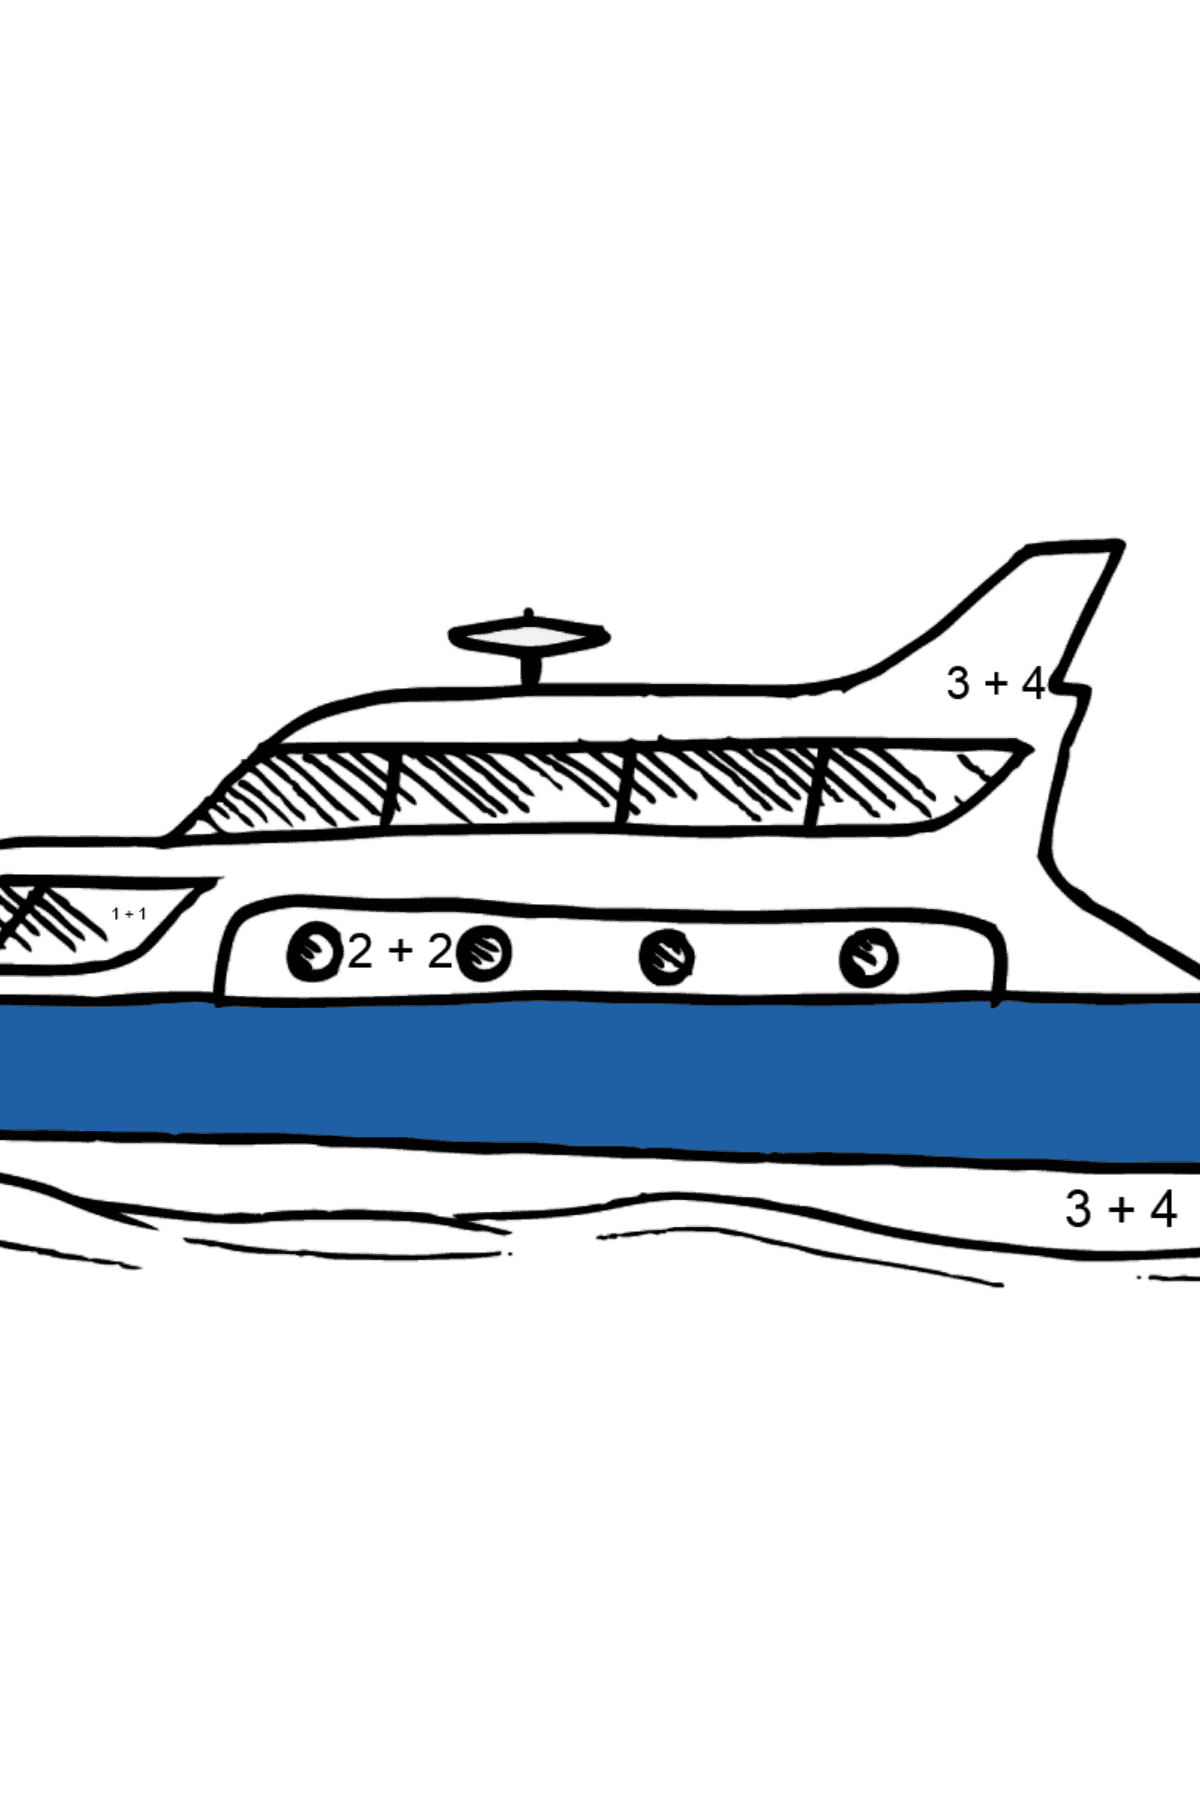 Coloring Page - A Yacht - Math Coloring - Addition for Kids